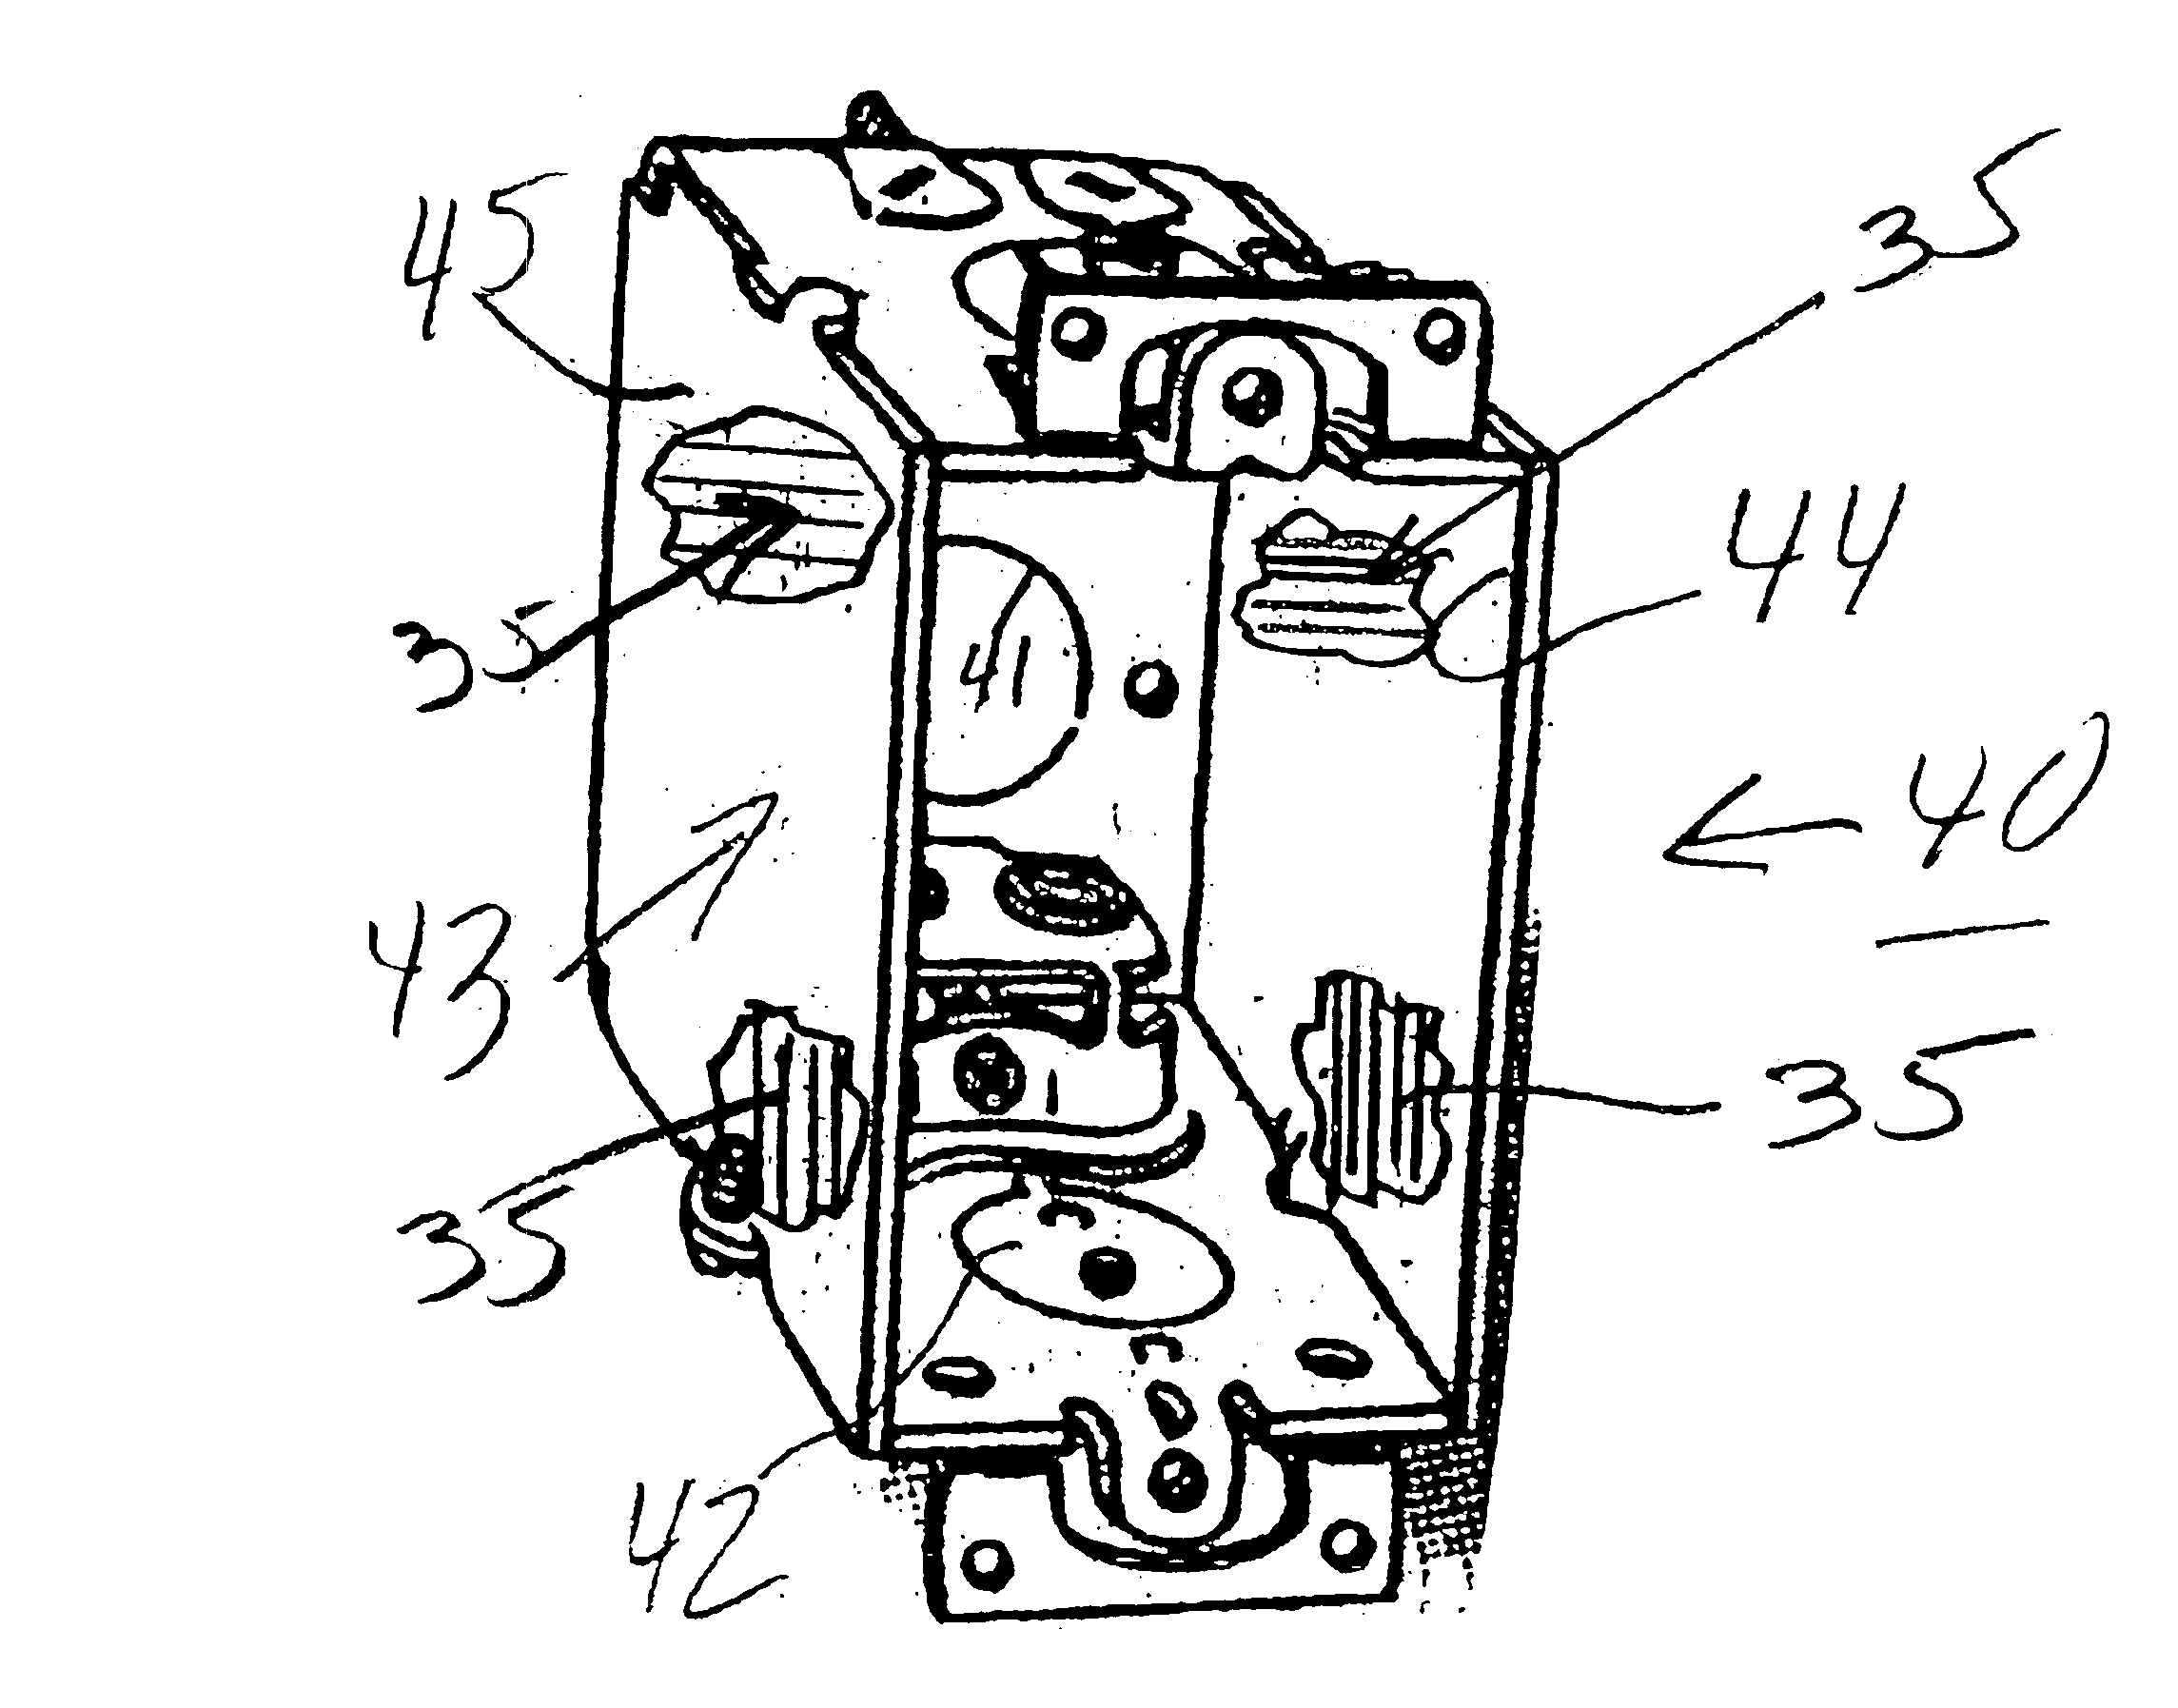 2001 Pat Fuse Diagram, 2001, Free Engine Image For User